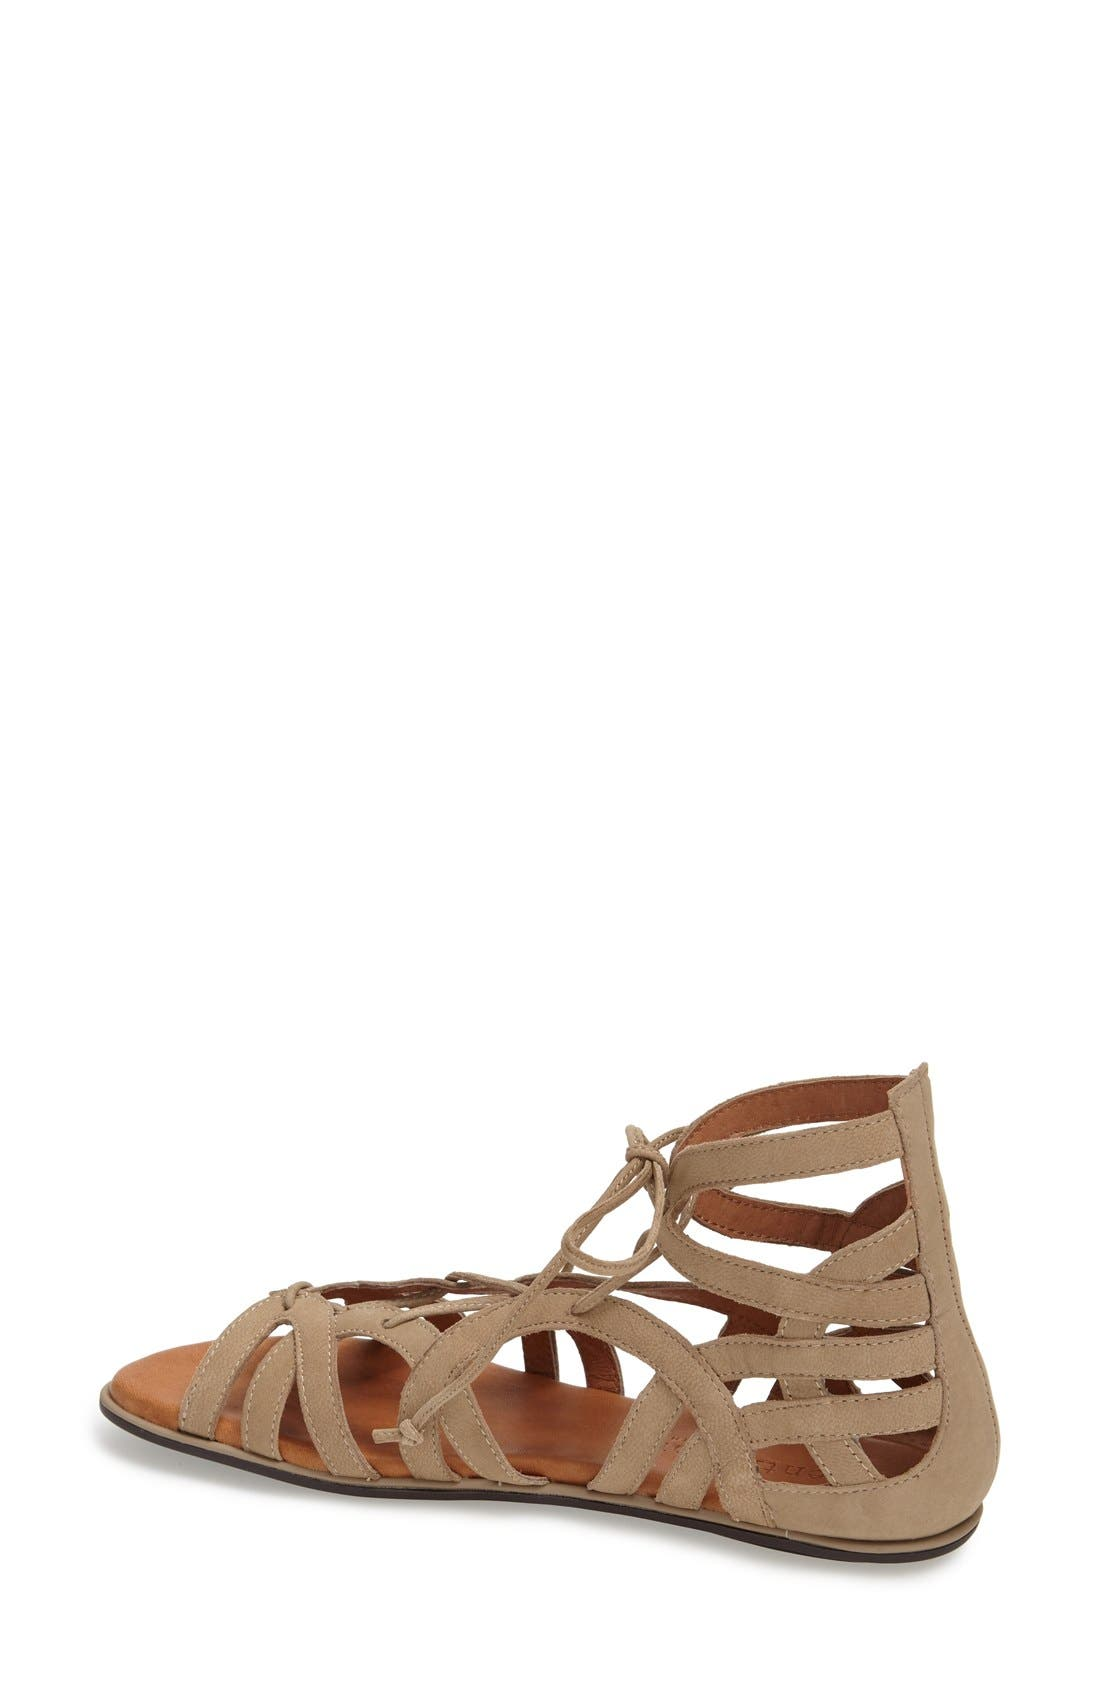 GENTLE SOULS BY KENNETH COLE, 'Break My Heart 3' Cage Sandal, Alternate thumbnail 2, color, TAUPE SUEDE